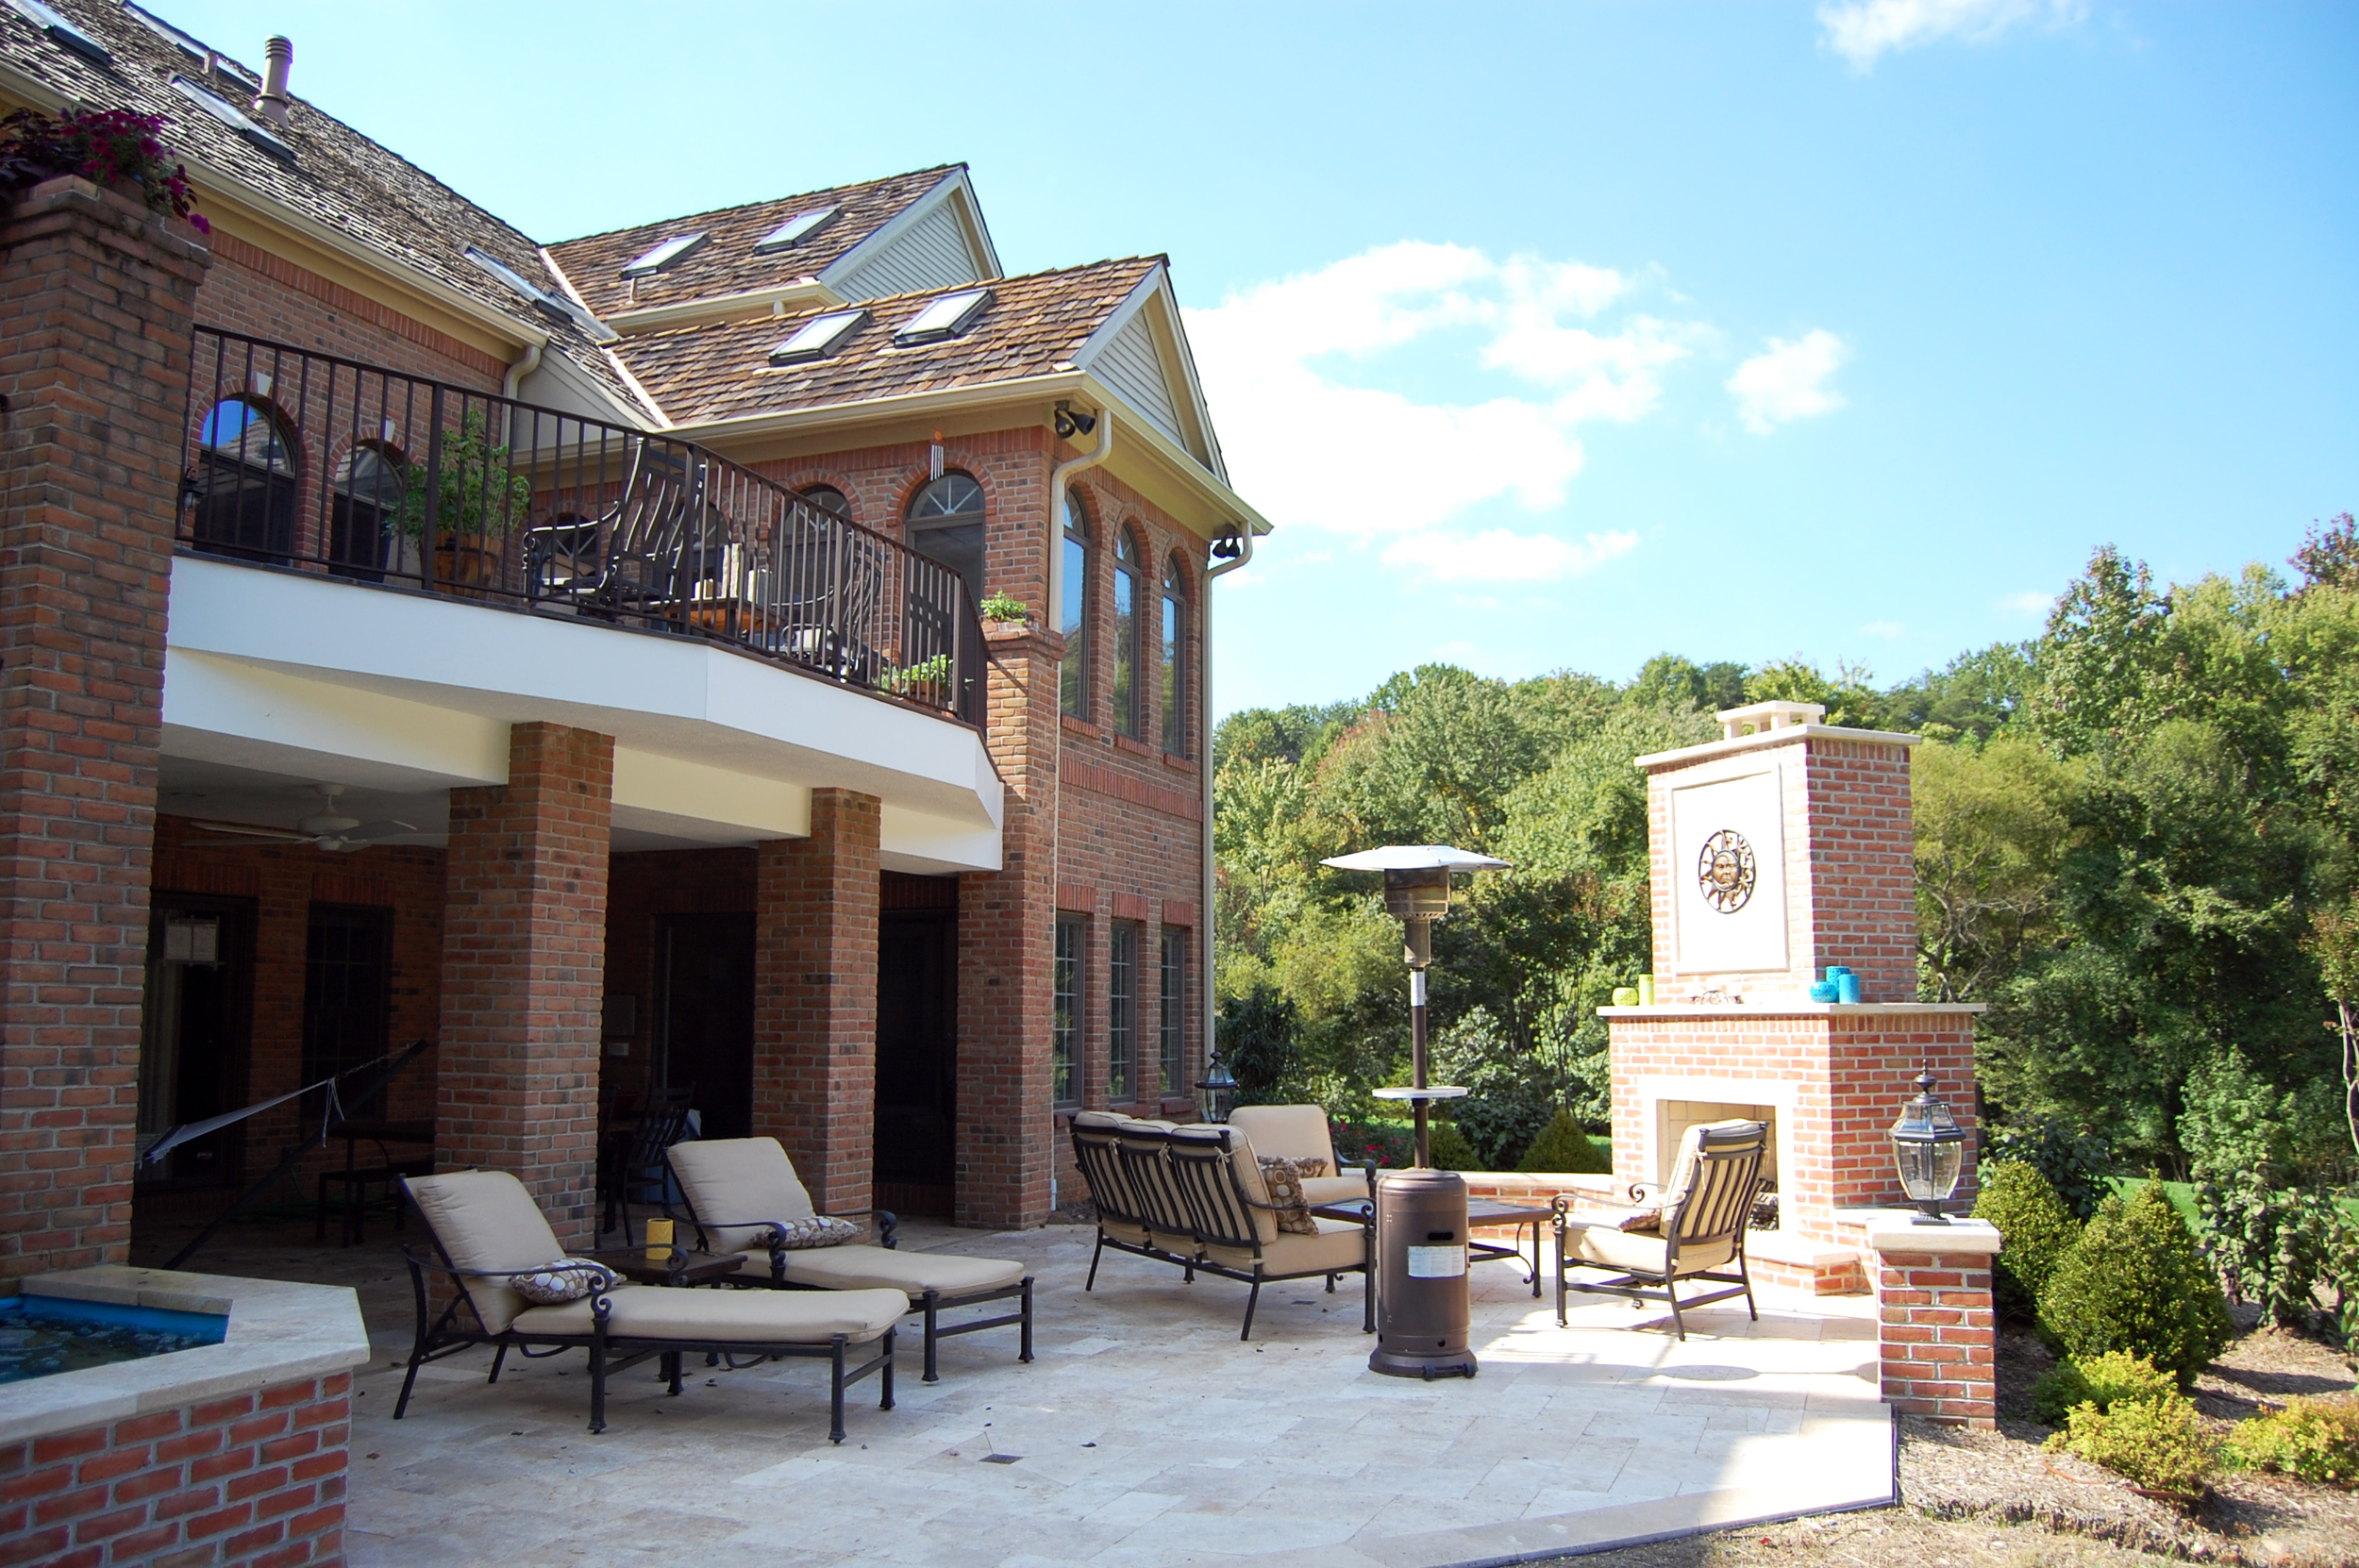 Overall view of project and travertine terrace.